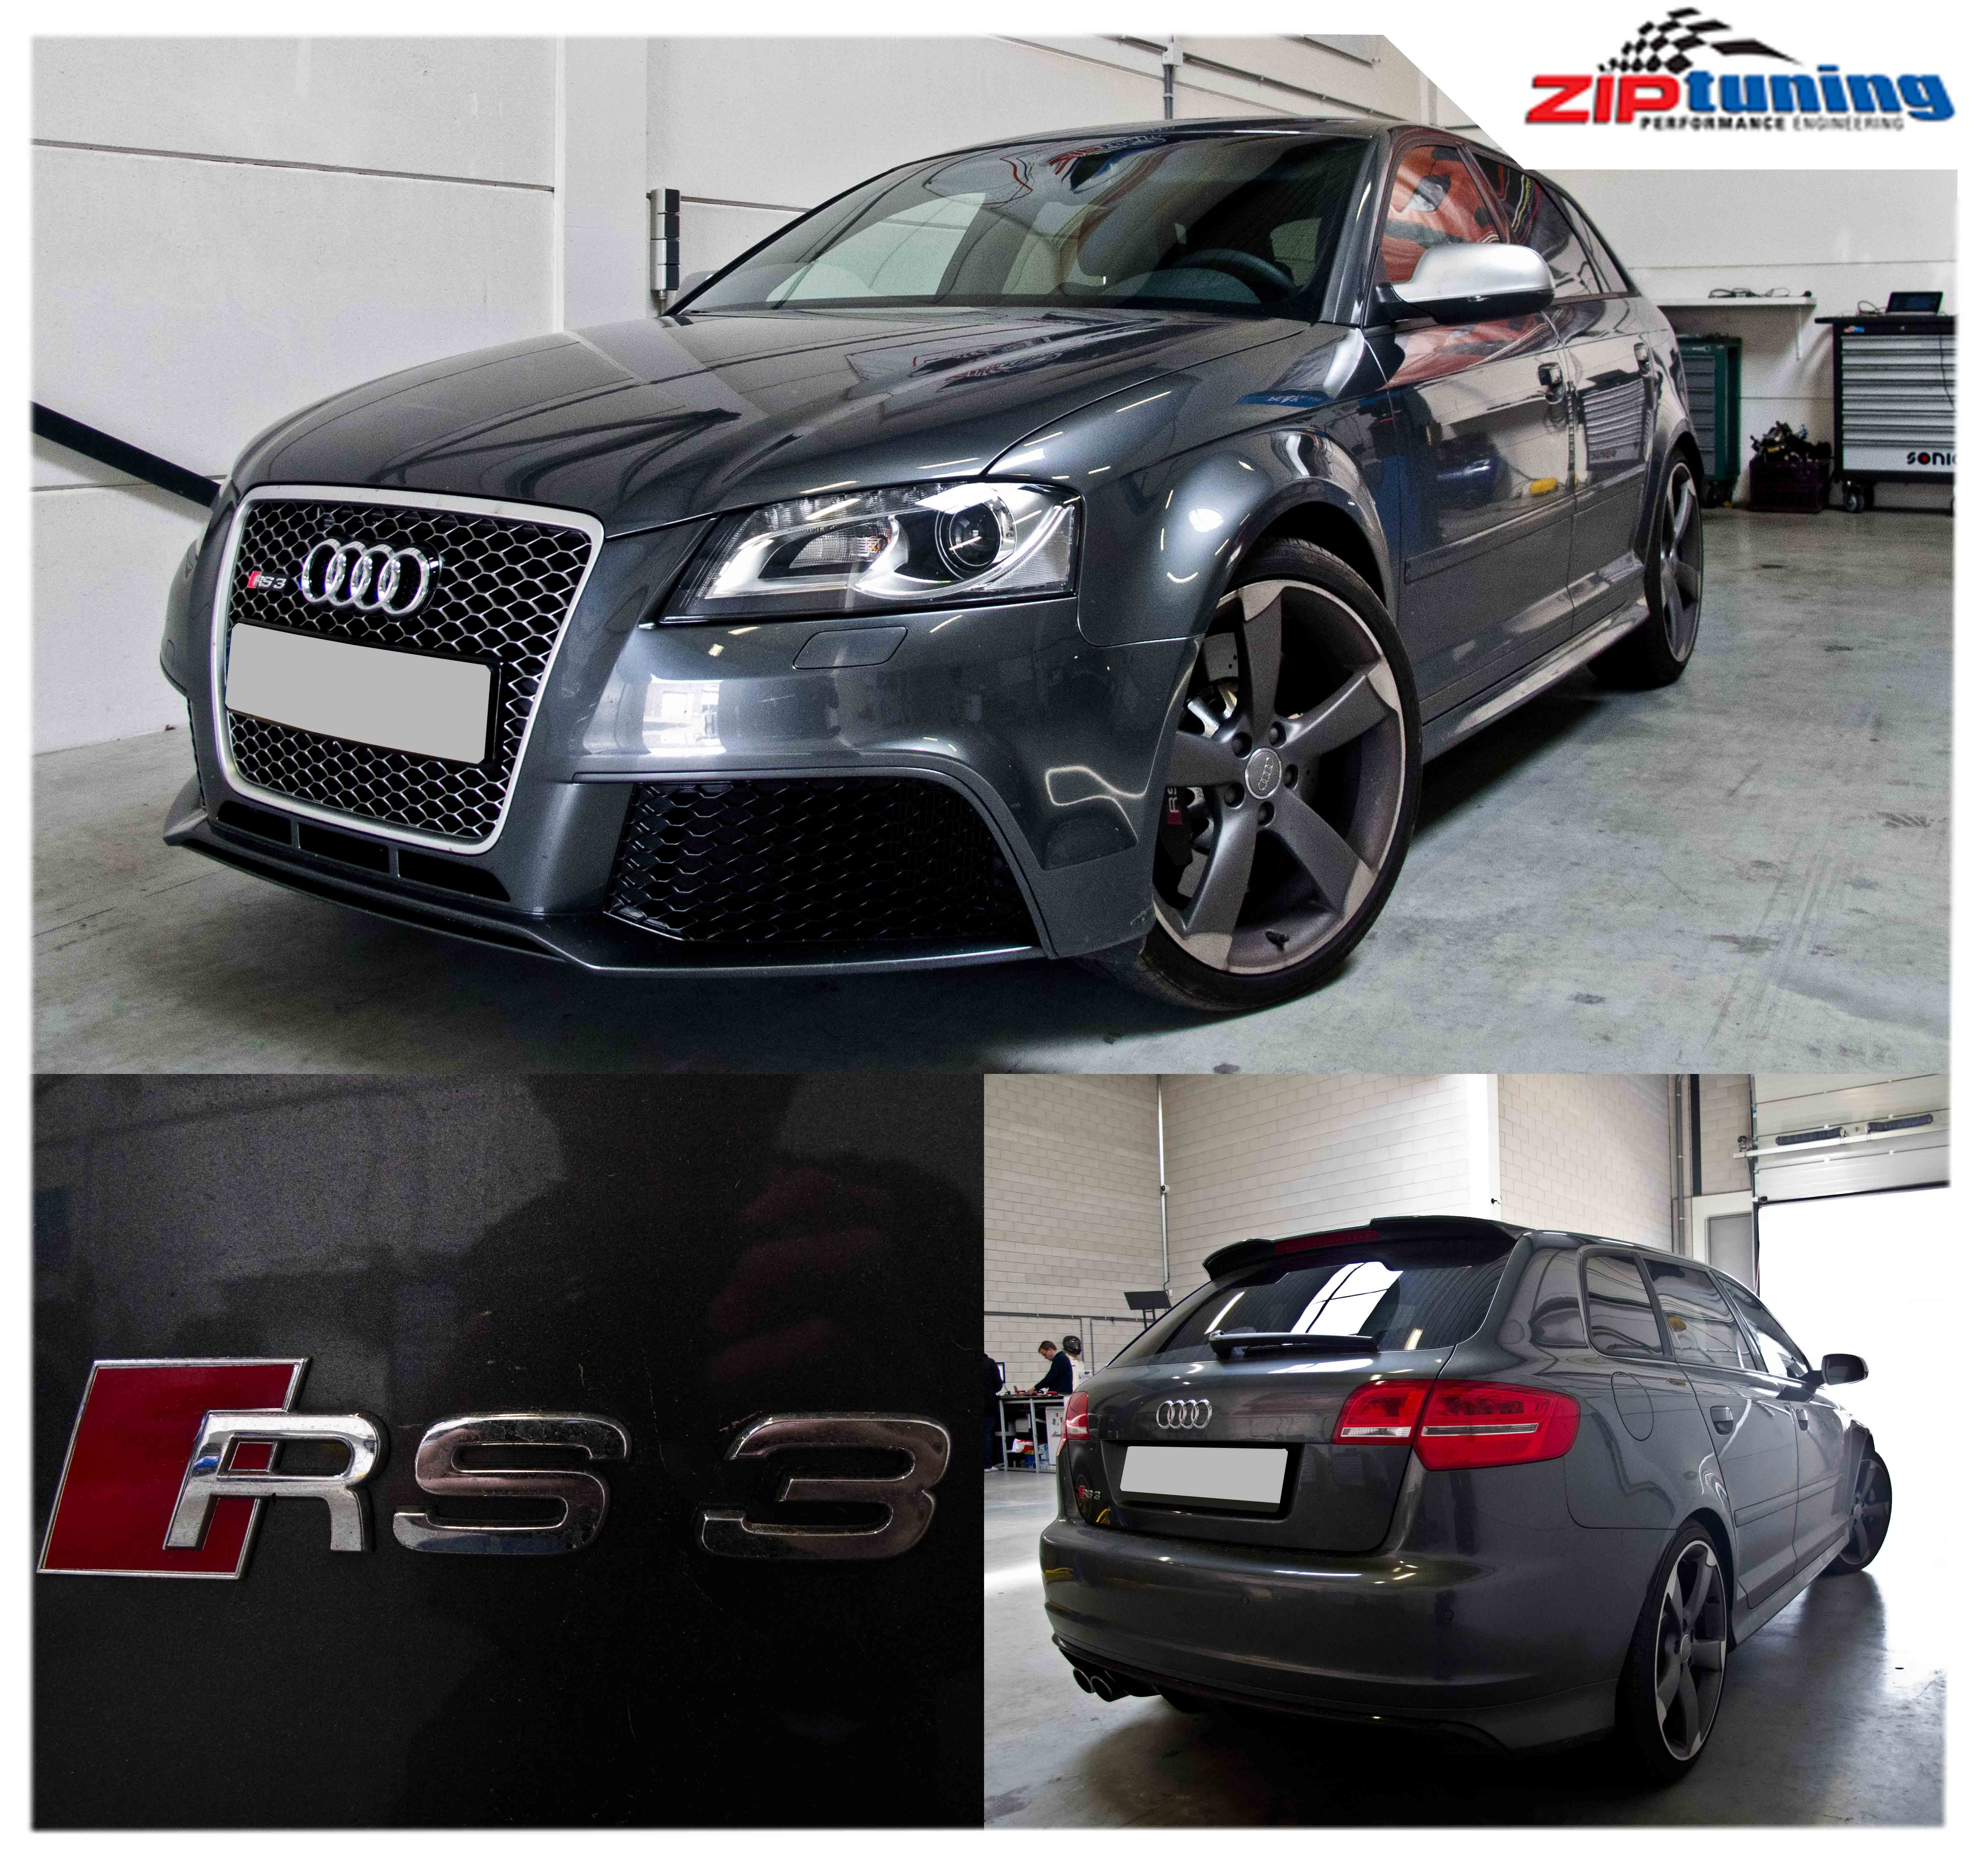 reprogrammation audi a3 1 4 tfsi 125 cv 8p 2008 2012. Black Bedroom Furniture Sets. Home Design Ideas